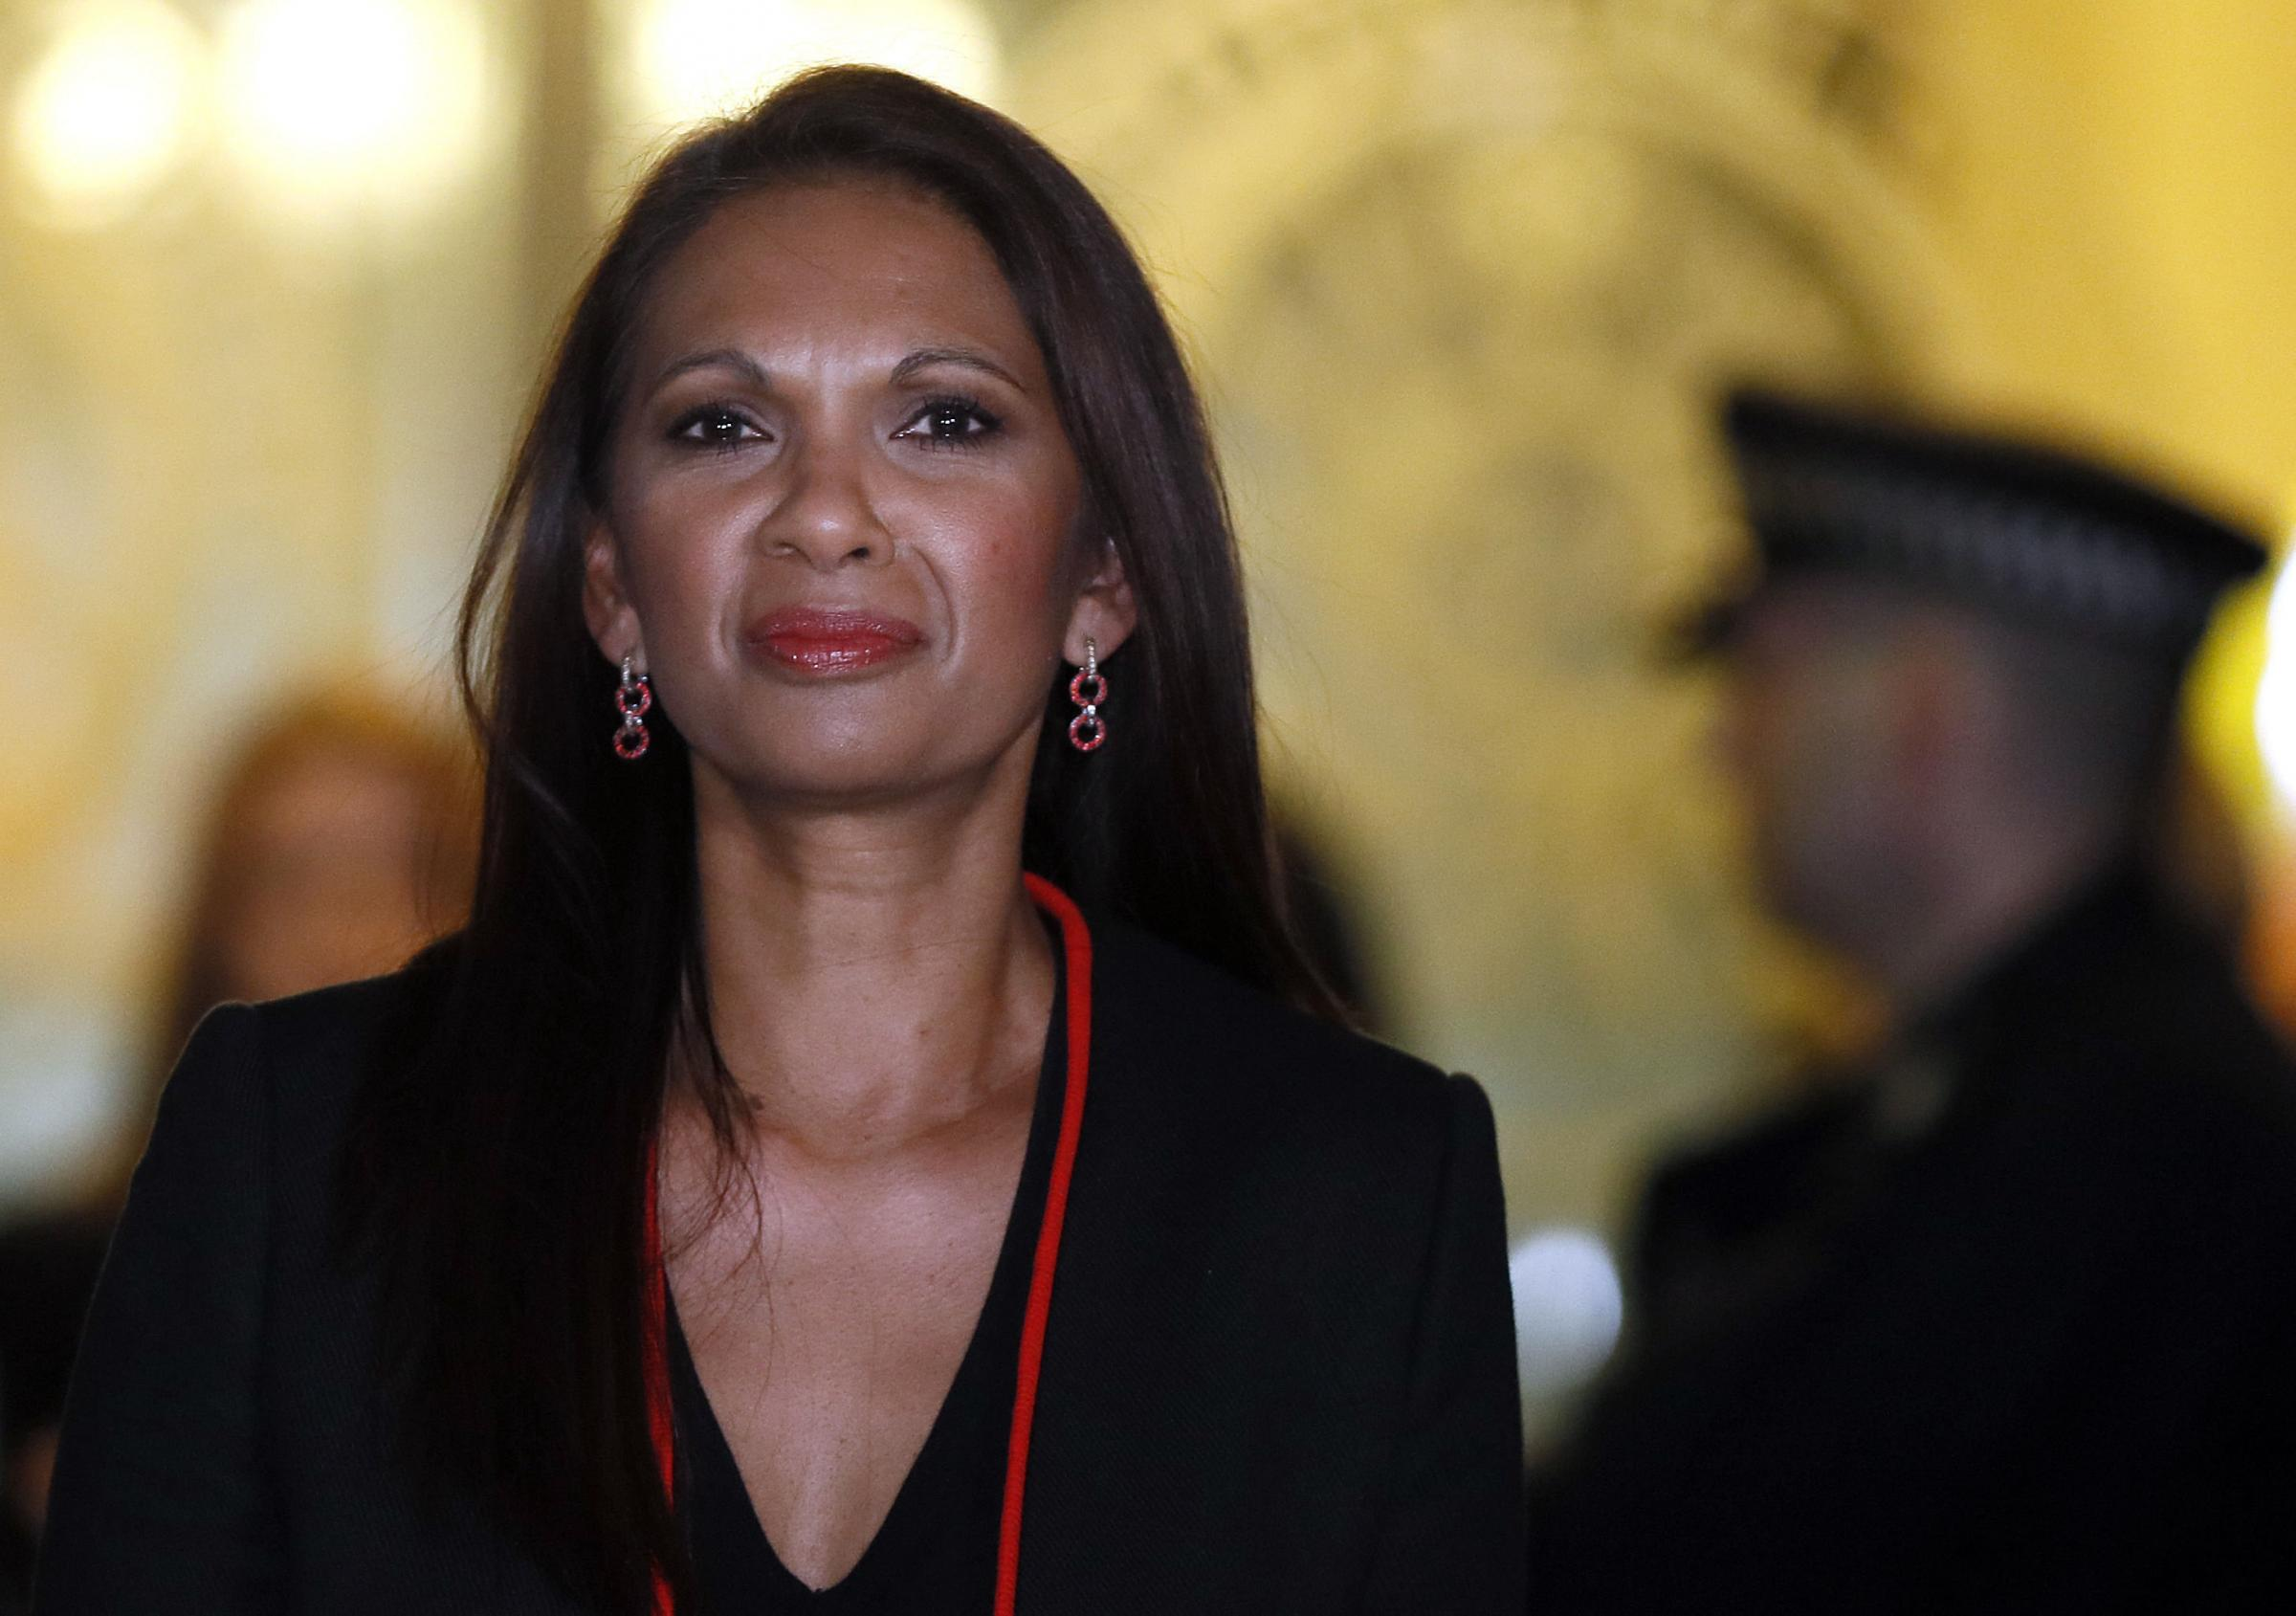 Gina Miller, who won a High Court ruling forcing the British government to seek Parliamentary approval before leaving the European Union, leaves after the fourth day of legal argument at The Supreme Court in London, Thursday, Dec. 8, 2016.